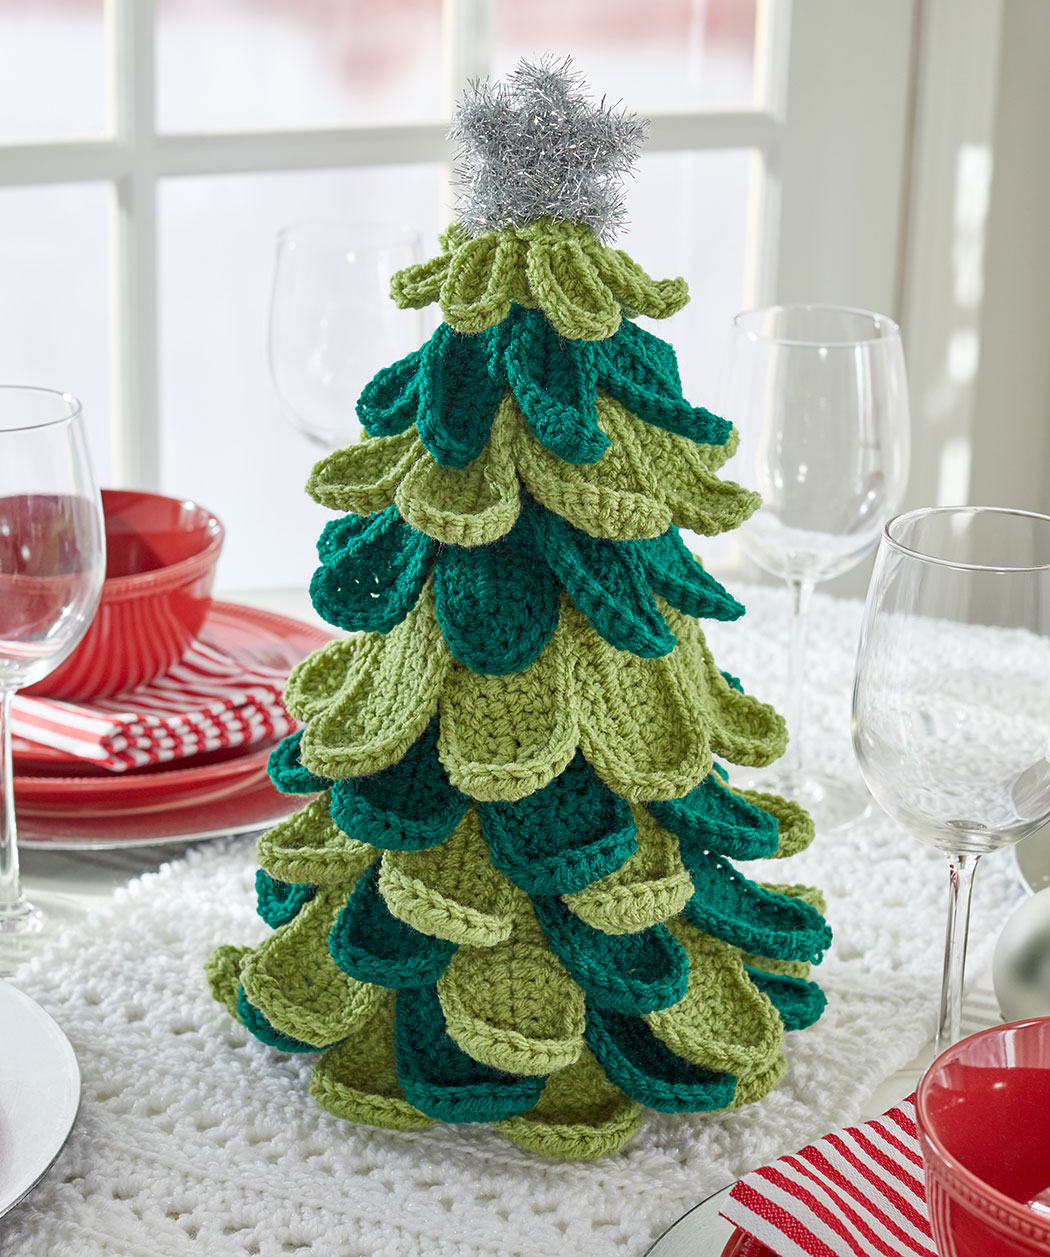 Amigurumi Christmas Tree Free Crochet Pattern